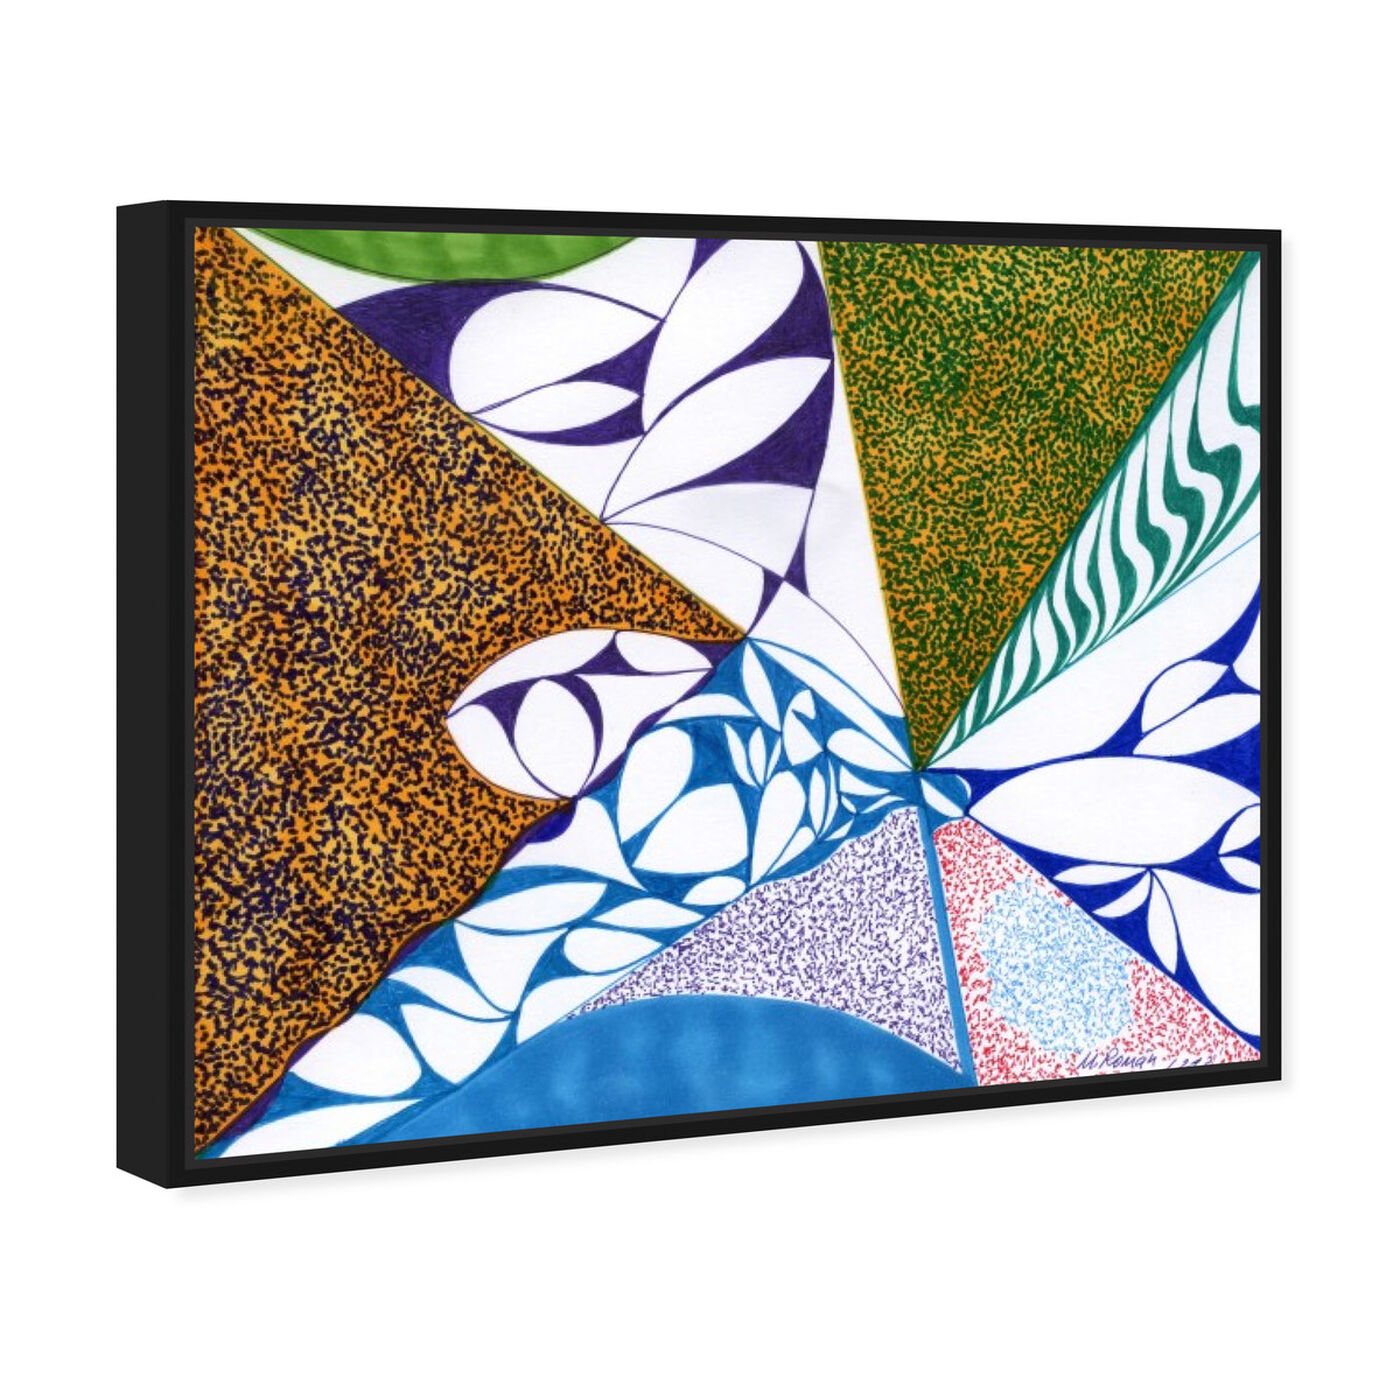 Angled view of Farmland featuring abstract and geometric art.